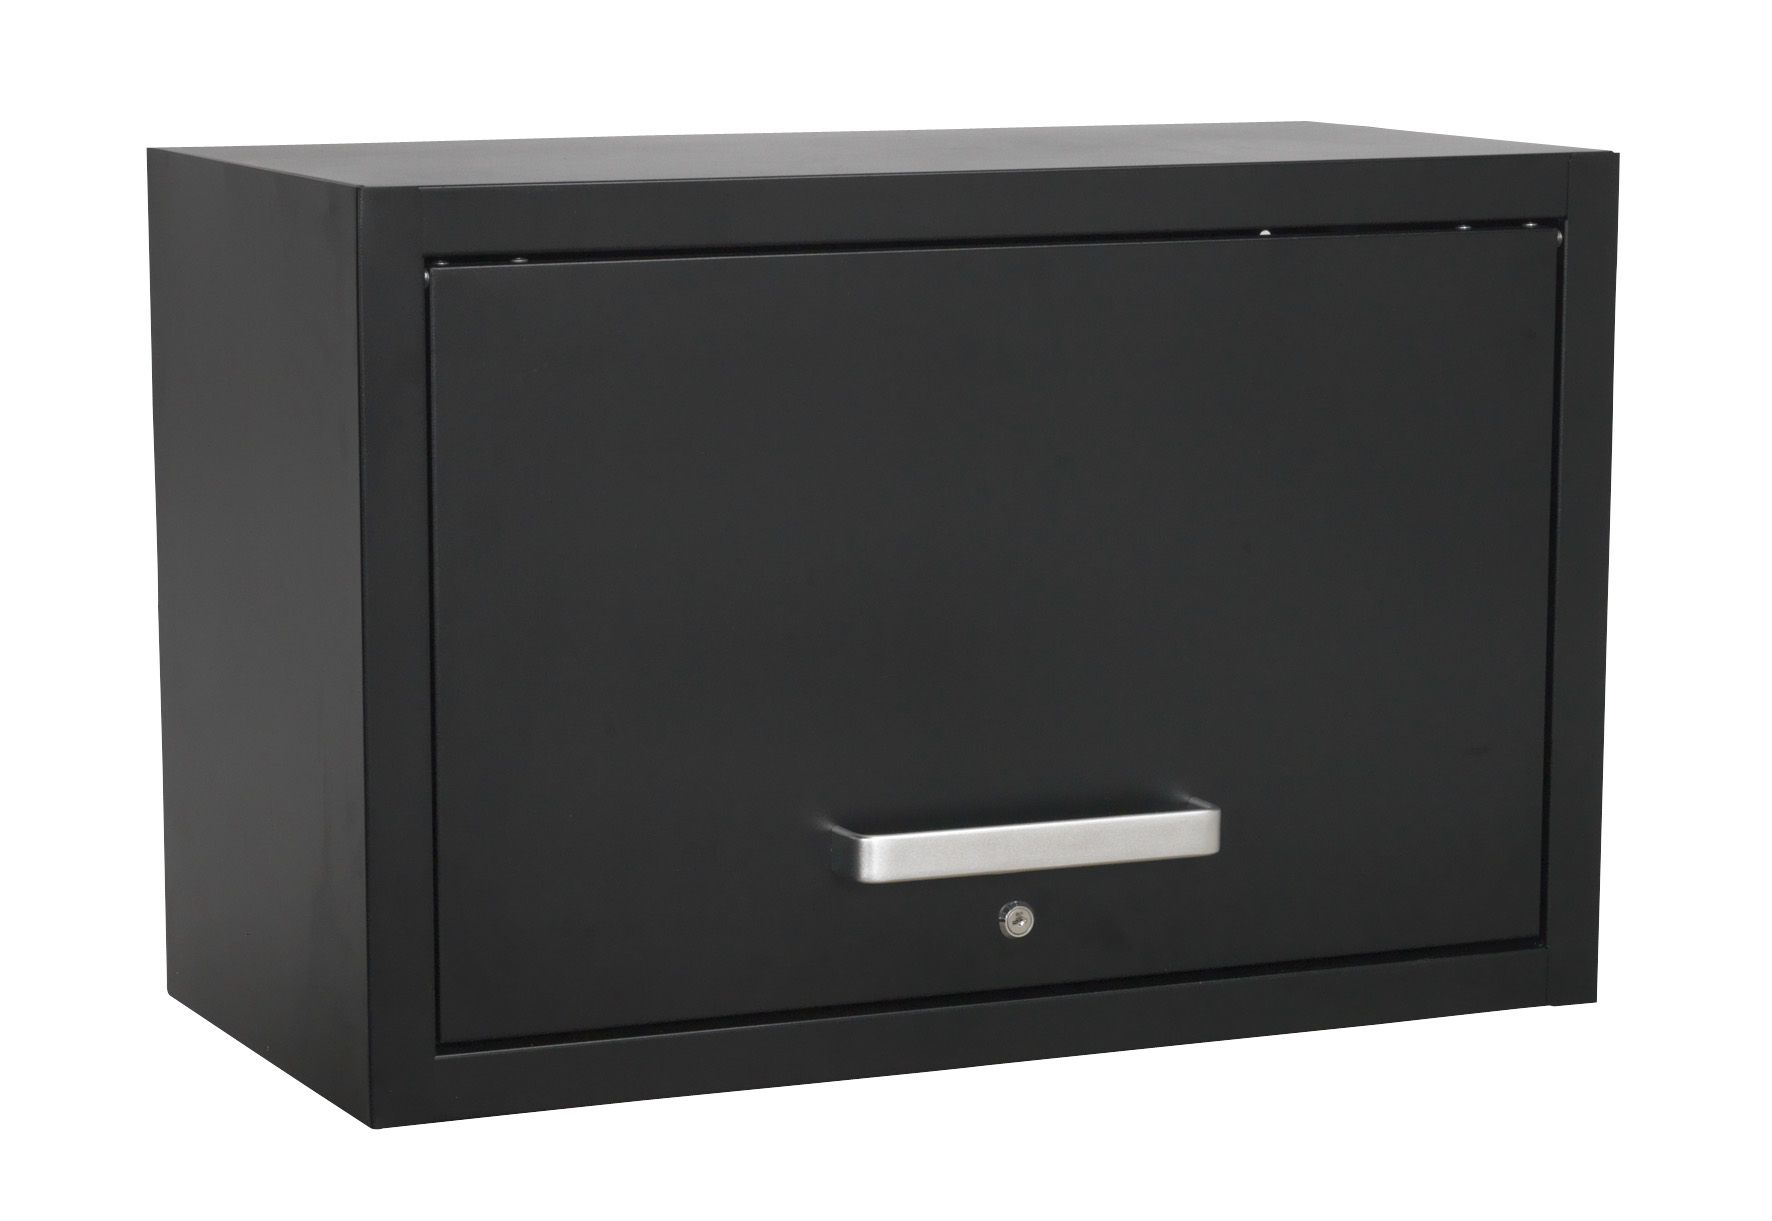 Sealey Premier Modular Wall Cabinet 775mm Heavy-Duty